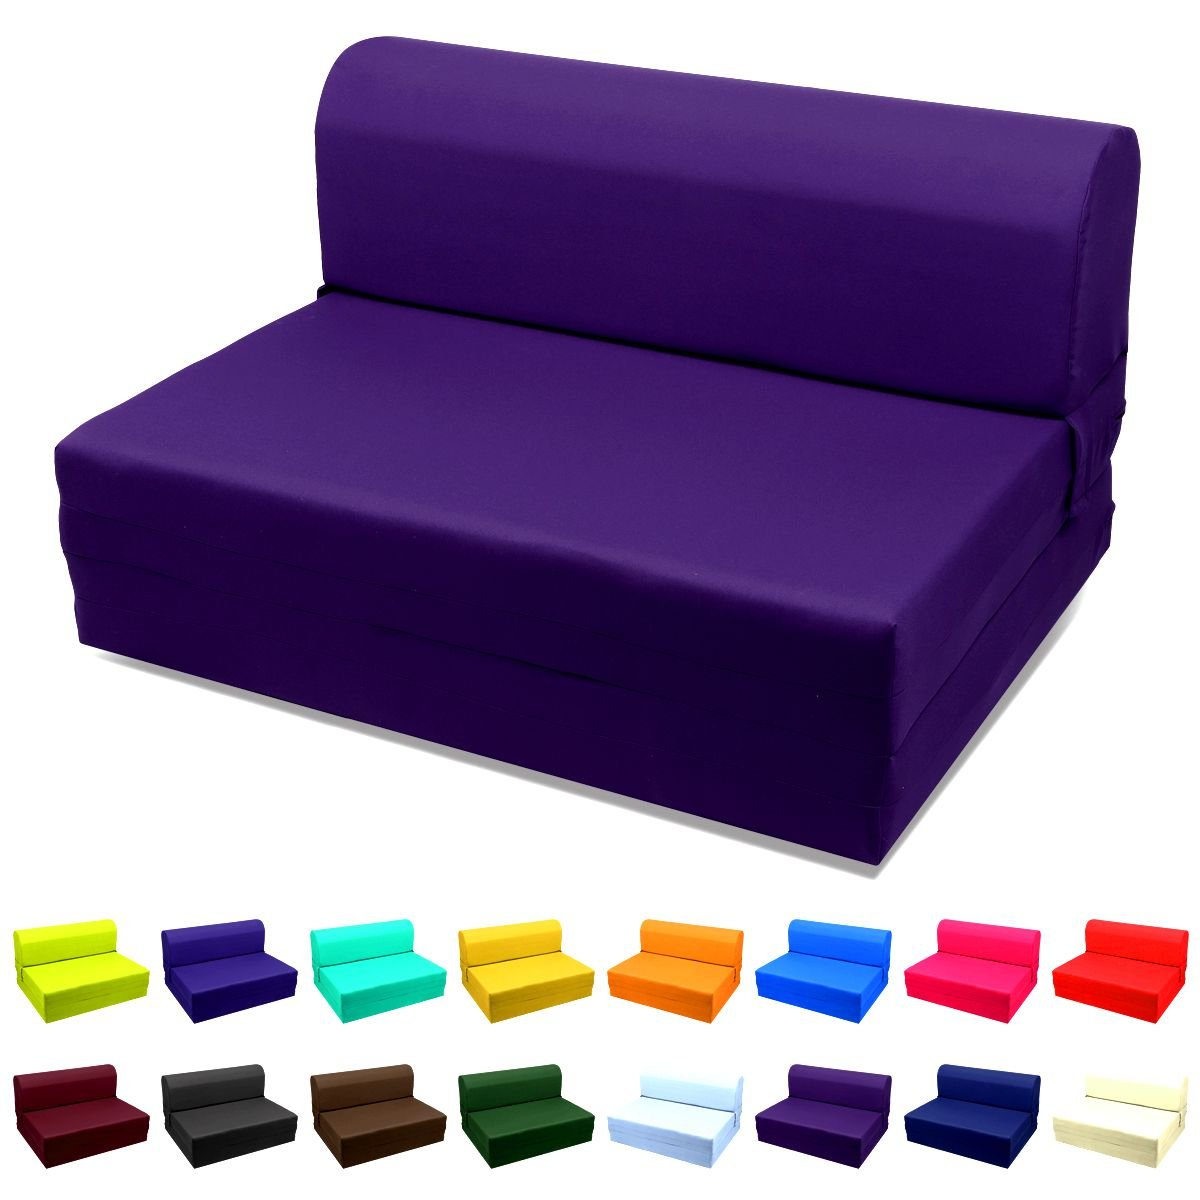 Sleeper Chair Folding Foam Bed Choose Color & Size